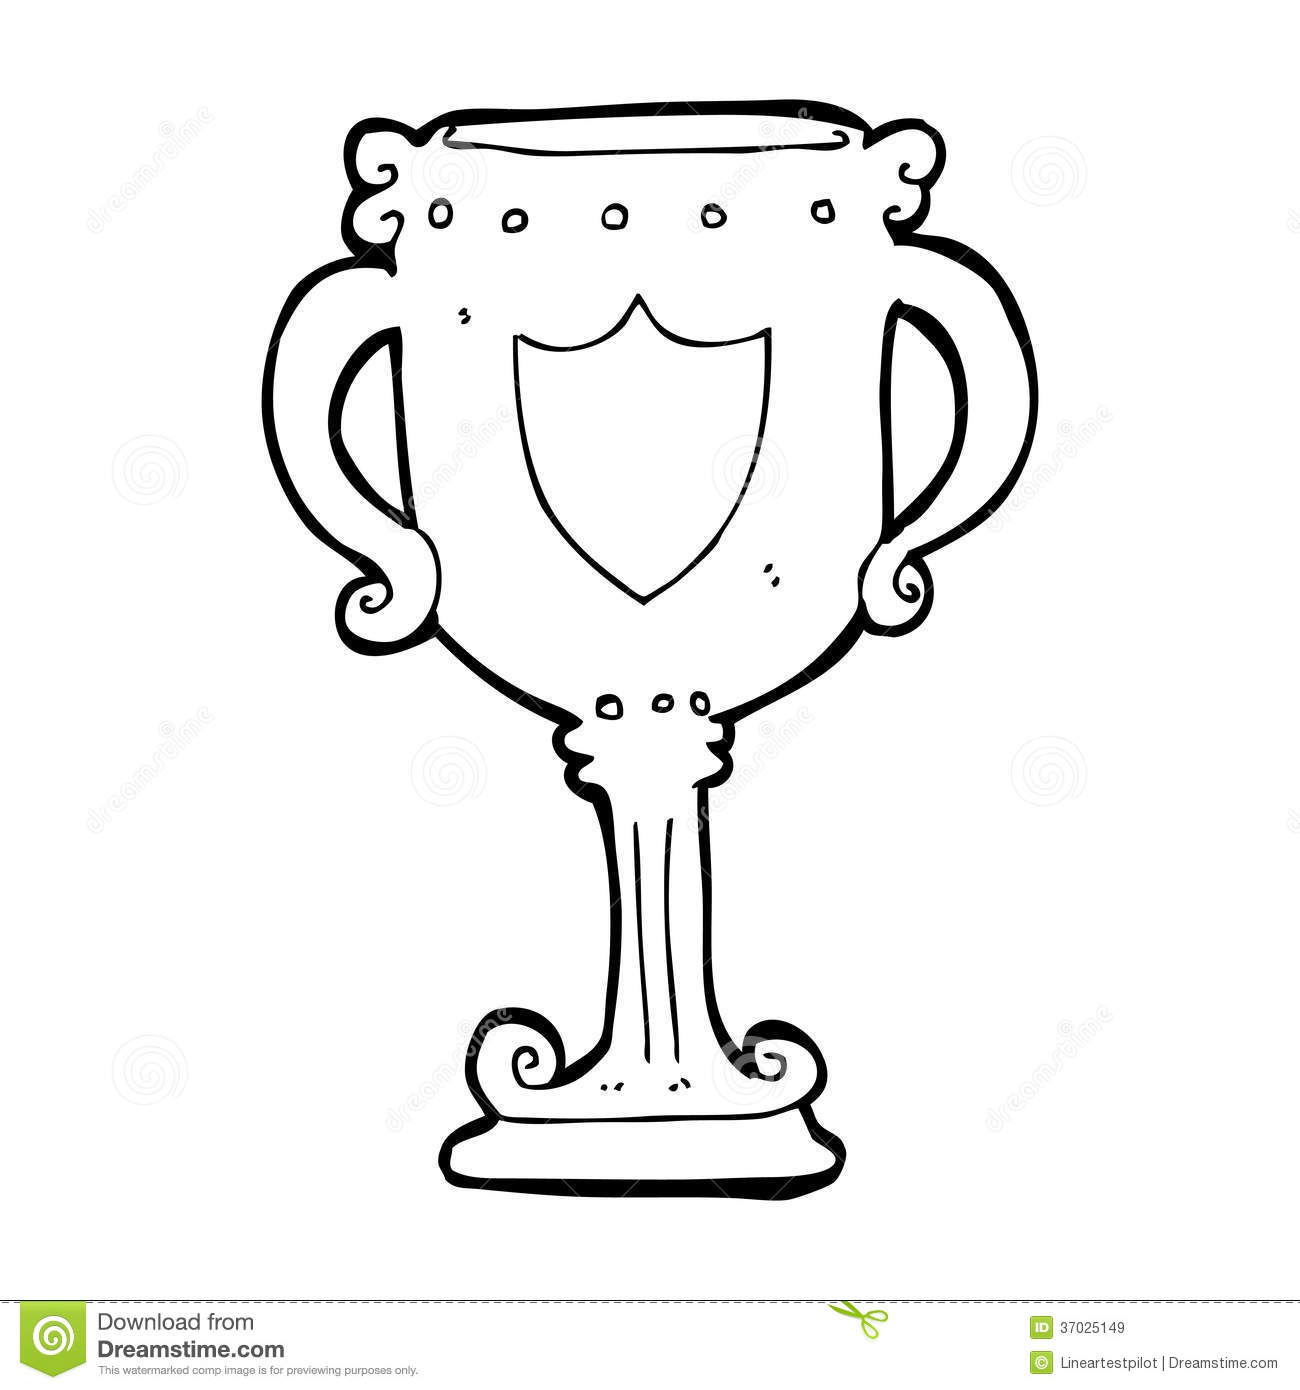 Cartoon Trophy Royalty Free Stock Images